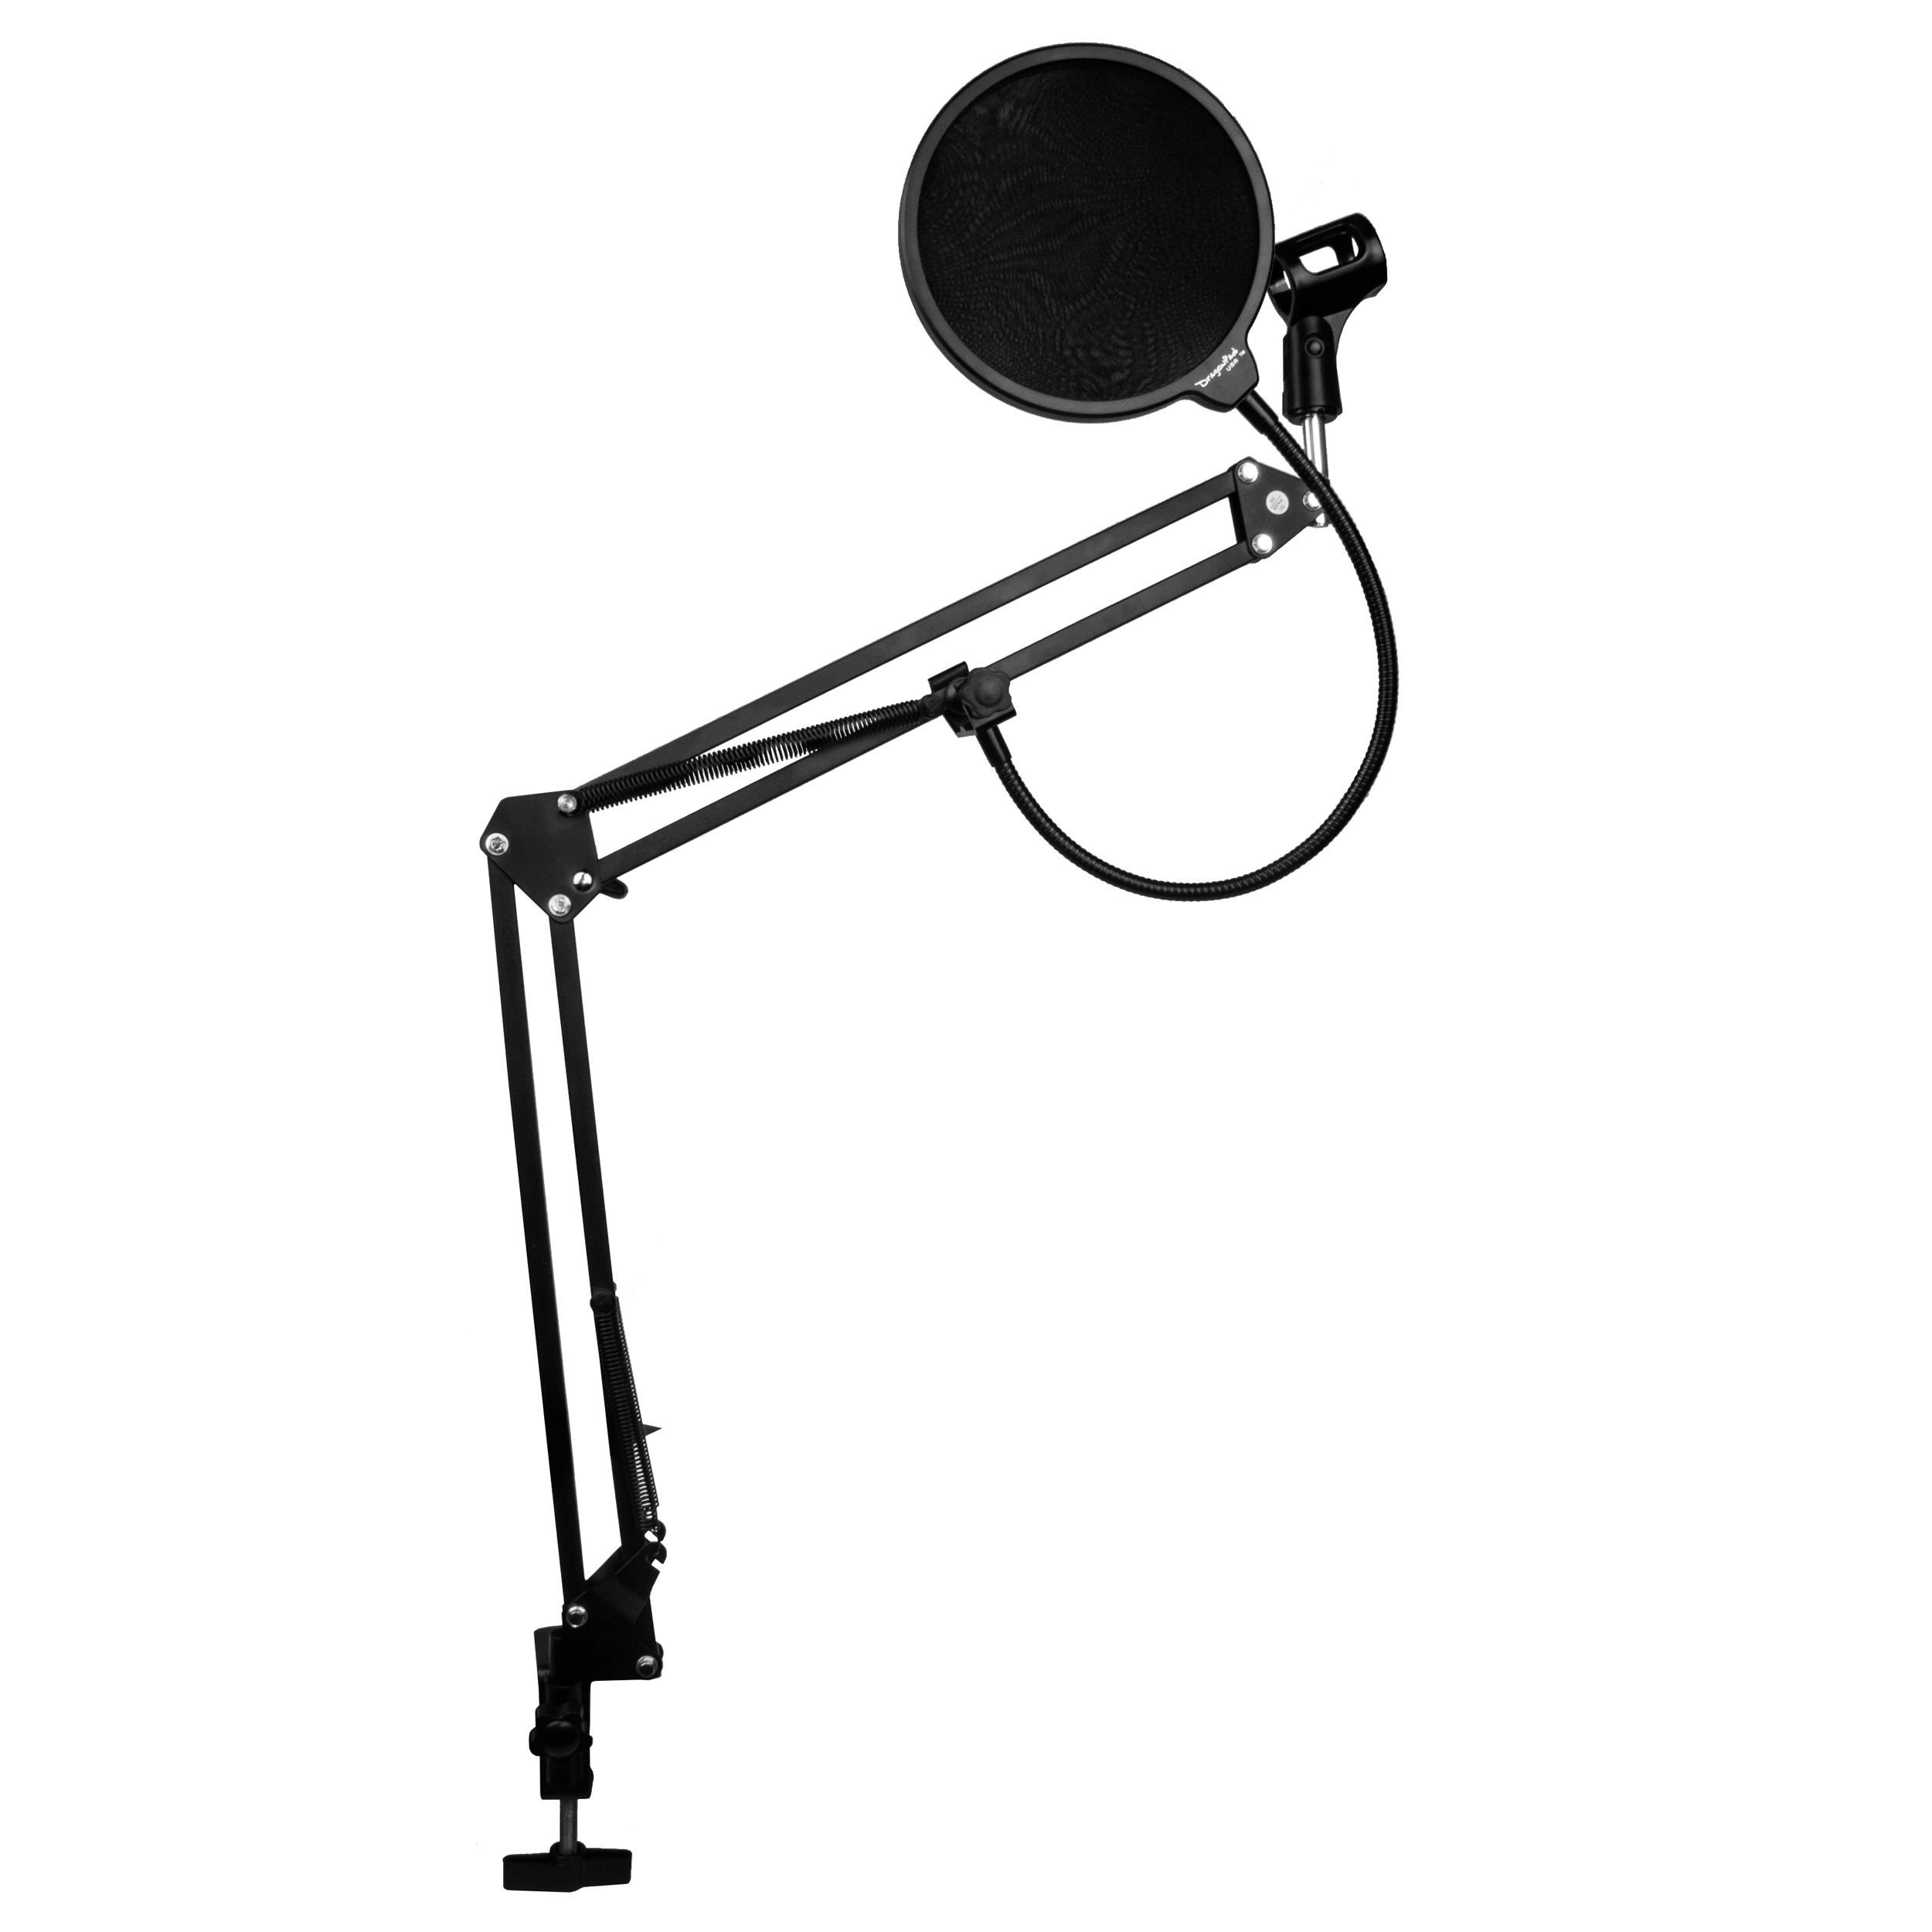 DragonPad USA Microphone Scissor Boom Arm with Desk Mount and Studio Pop Filter - Black/Black